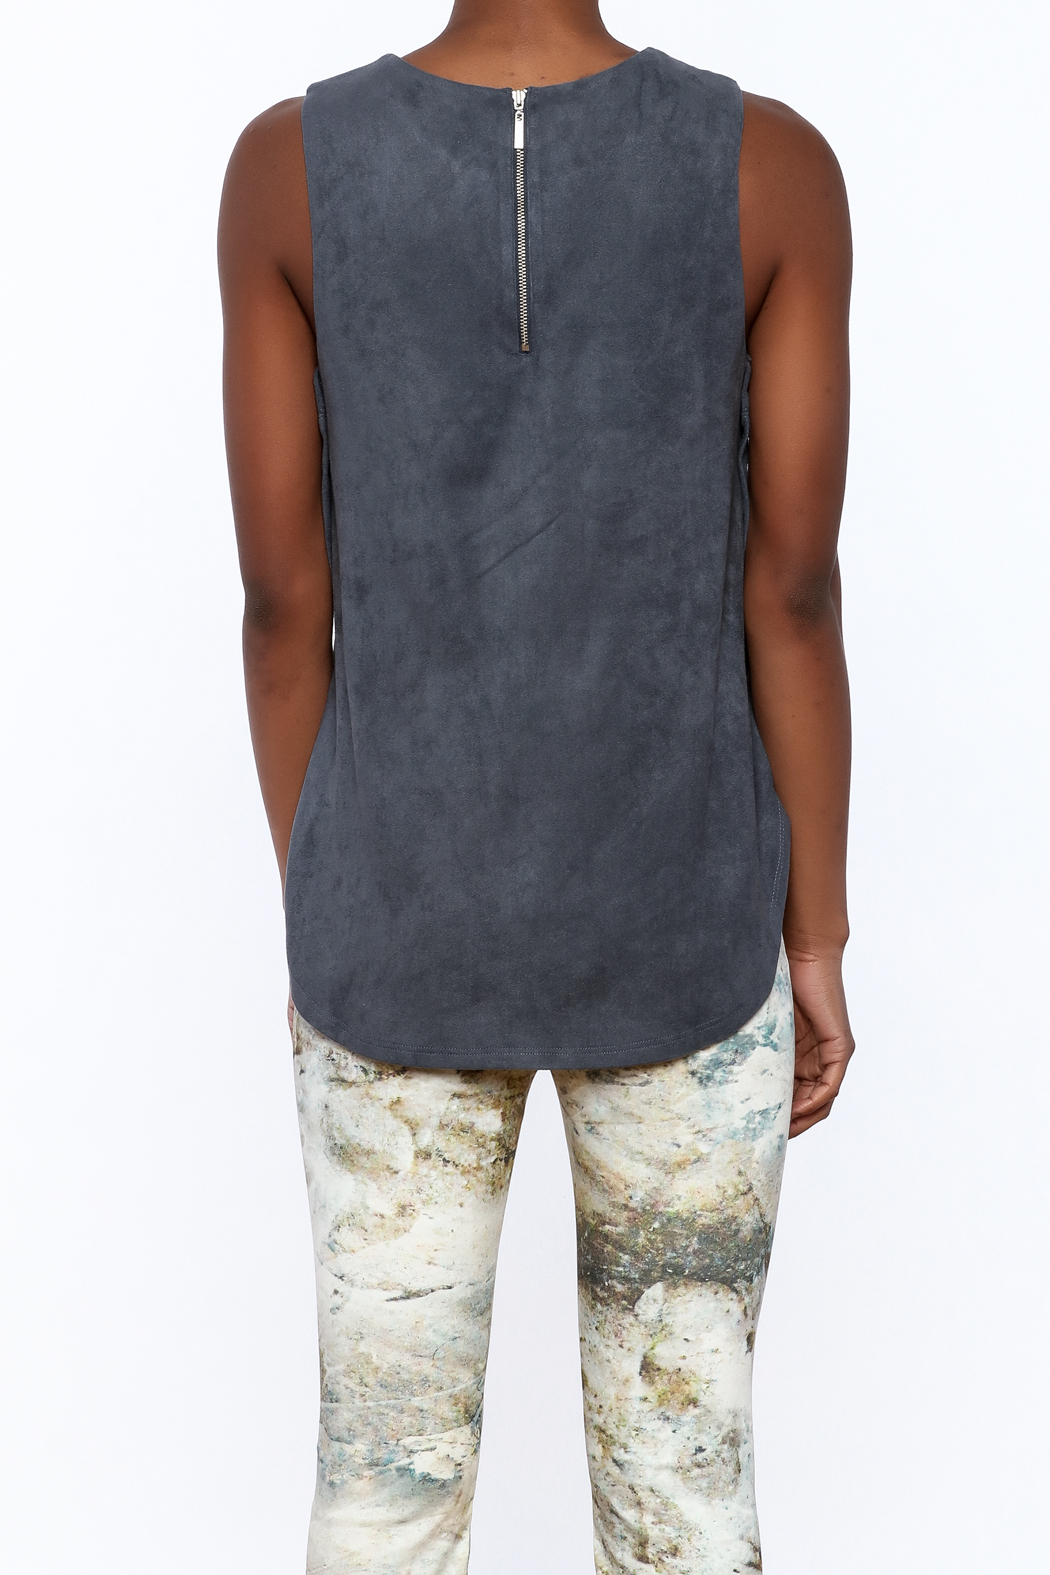 Tart Collections Grey Sleeveless Top - Back Cropped Image